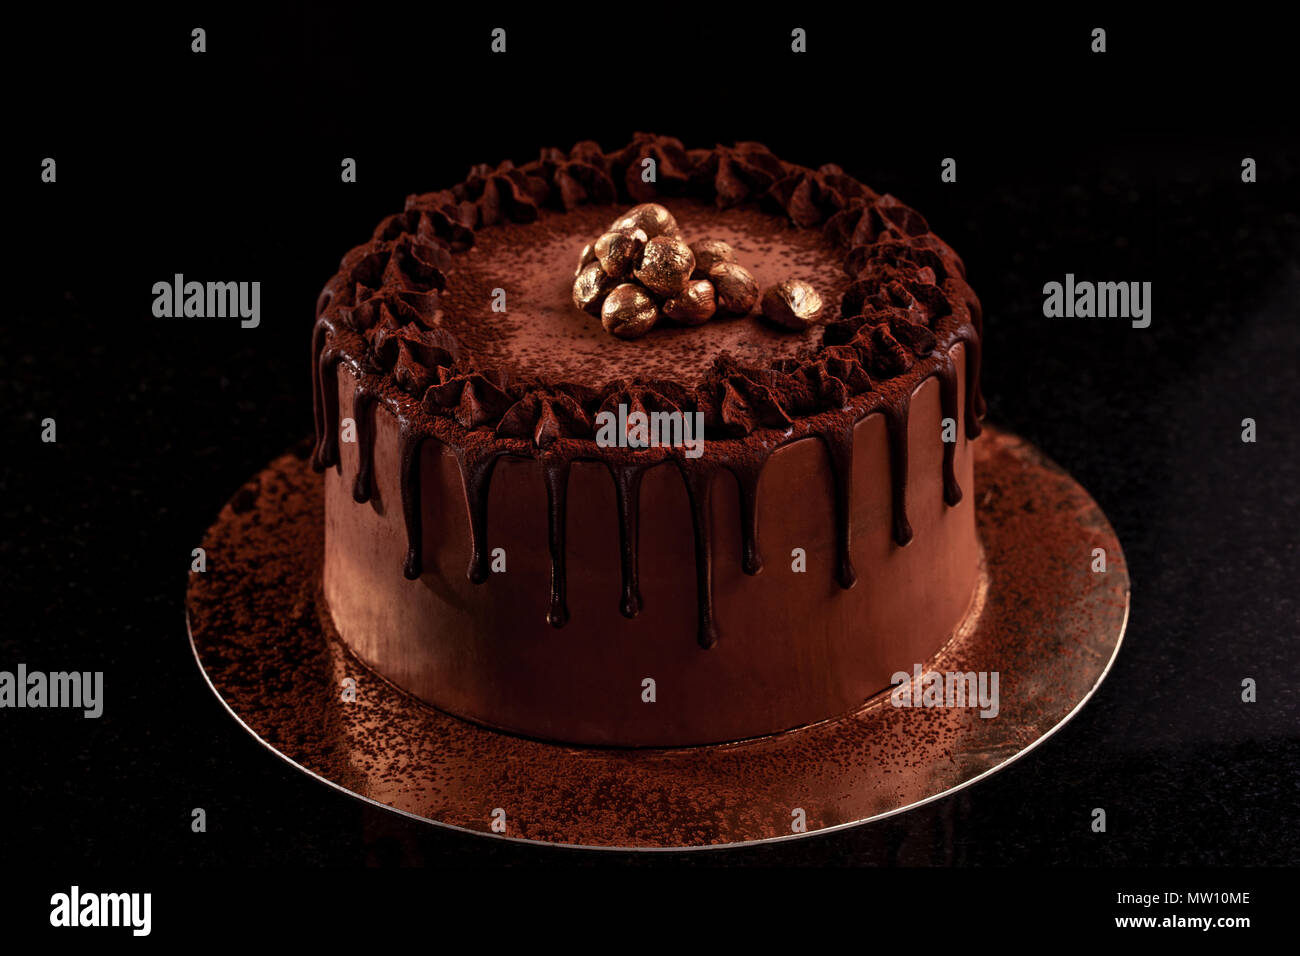 Chocolate cake with nuts on a black background - Stock Image